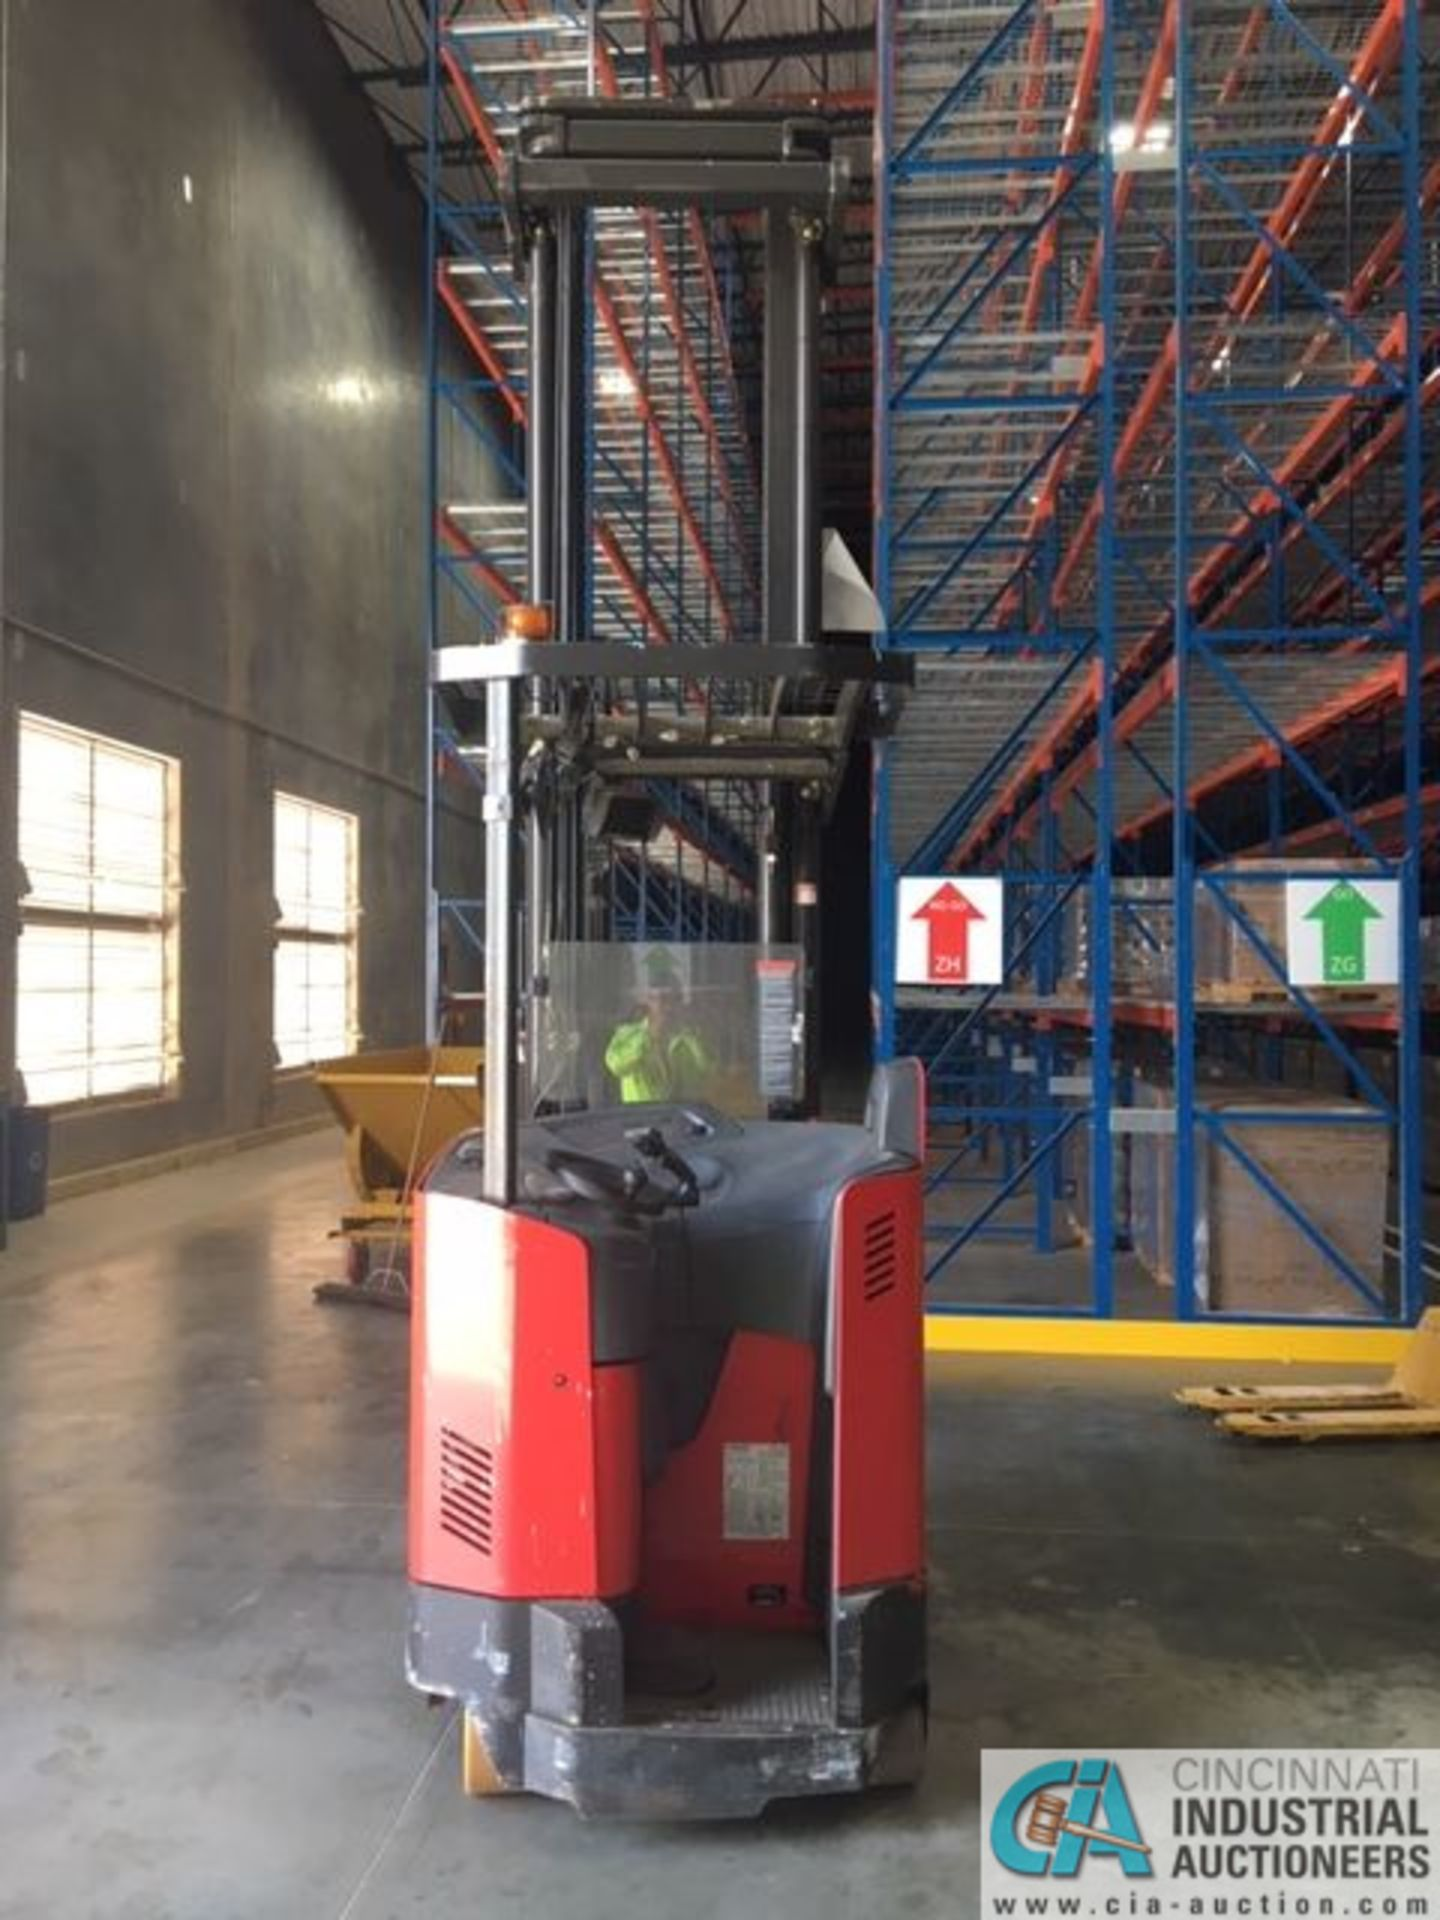 RAYMOND MODEL 750-R45TT ELECTRIC REACH TRUCK; S/N 750-15-BC47246, 36-VOLT BATTERY CHARGER, 36-VOLT - Image 7 of 9